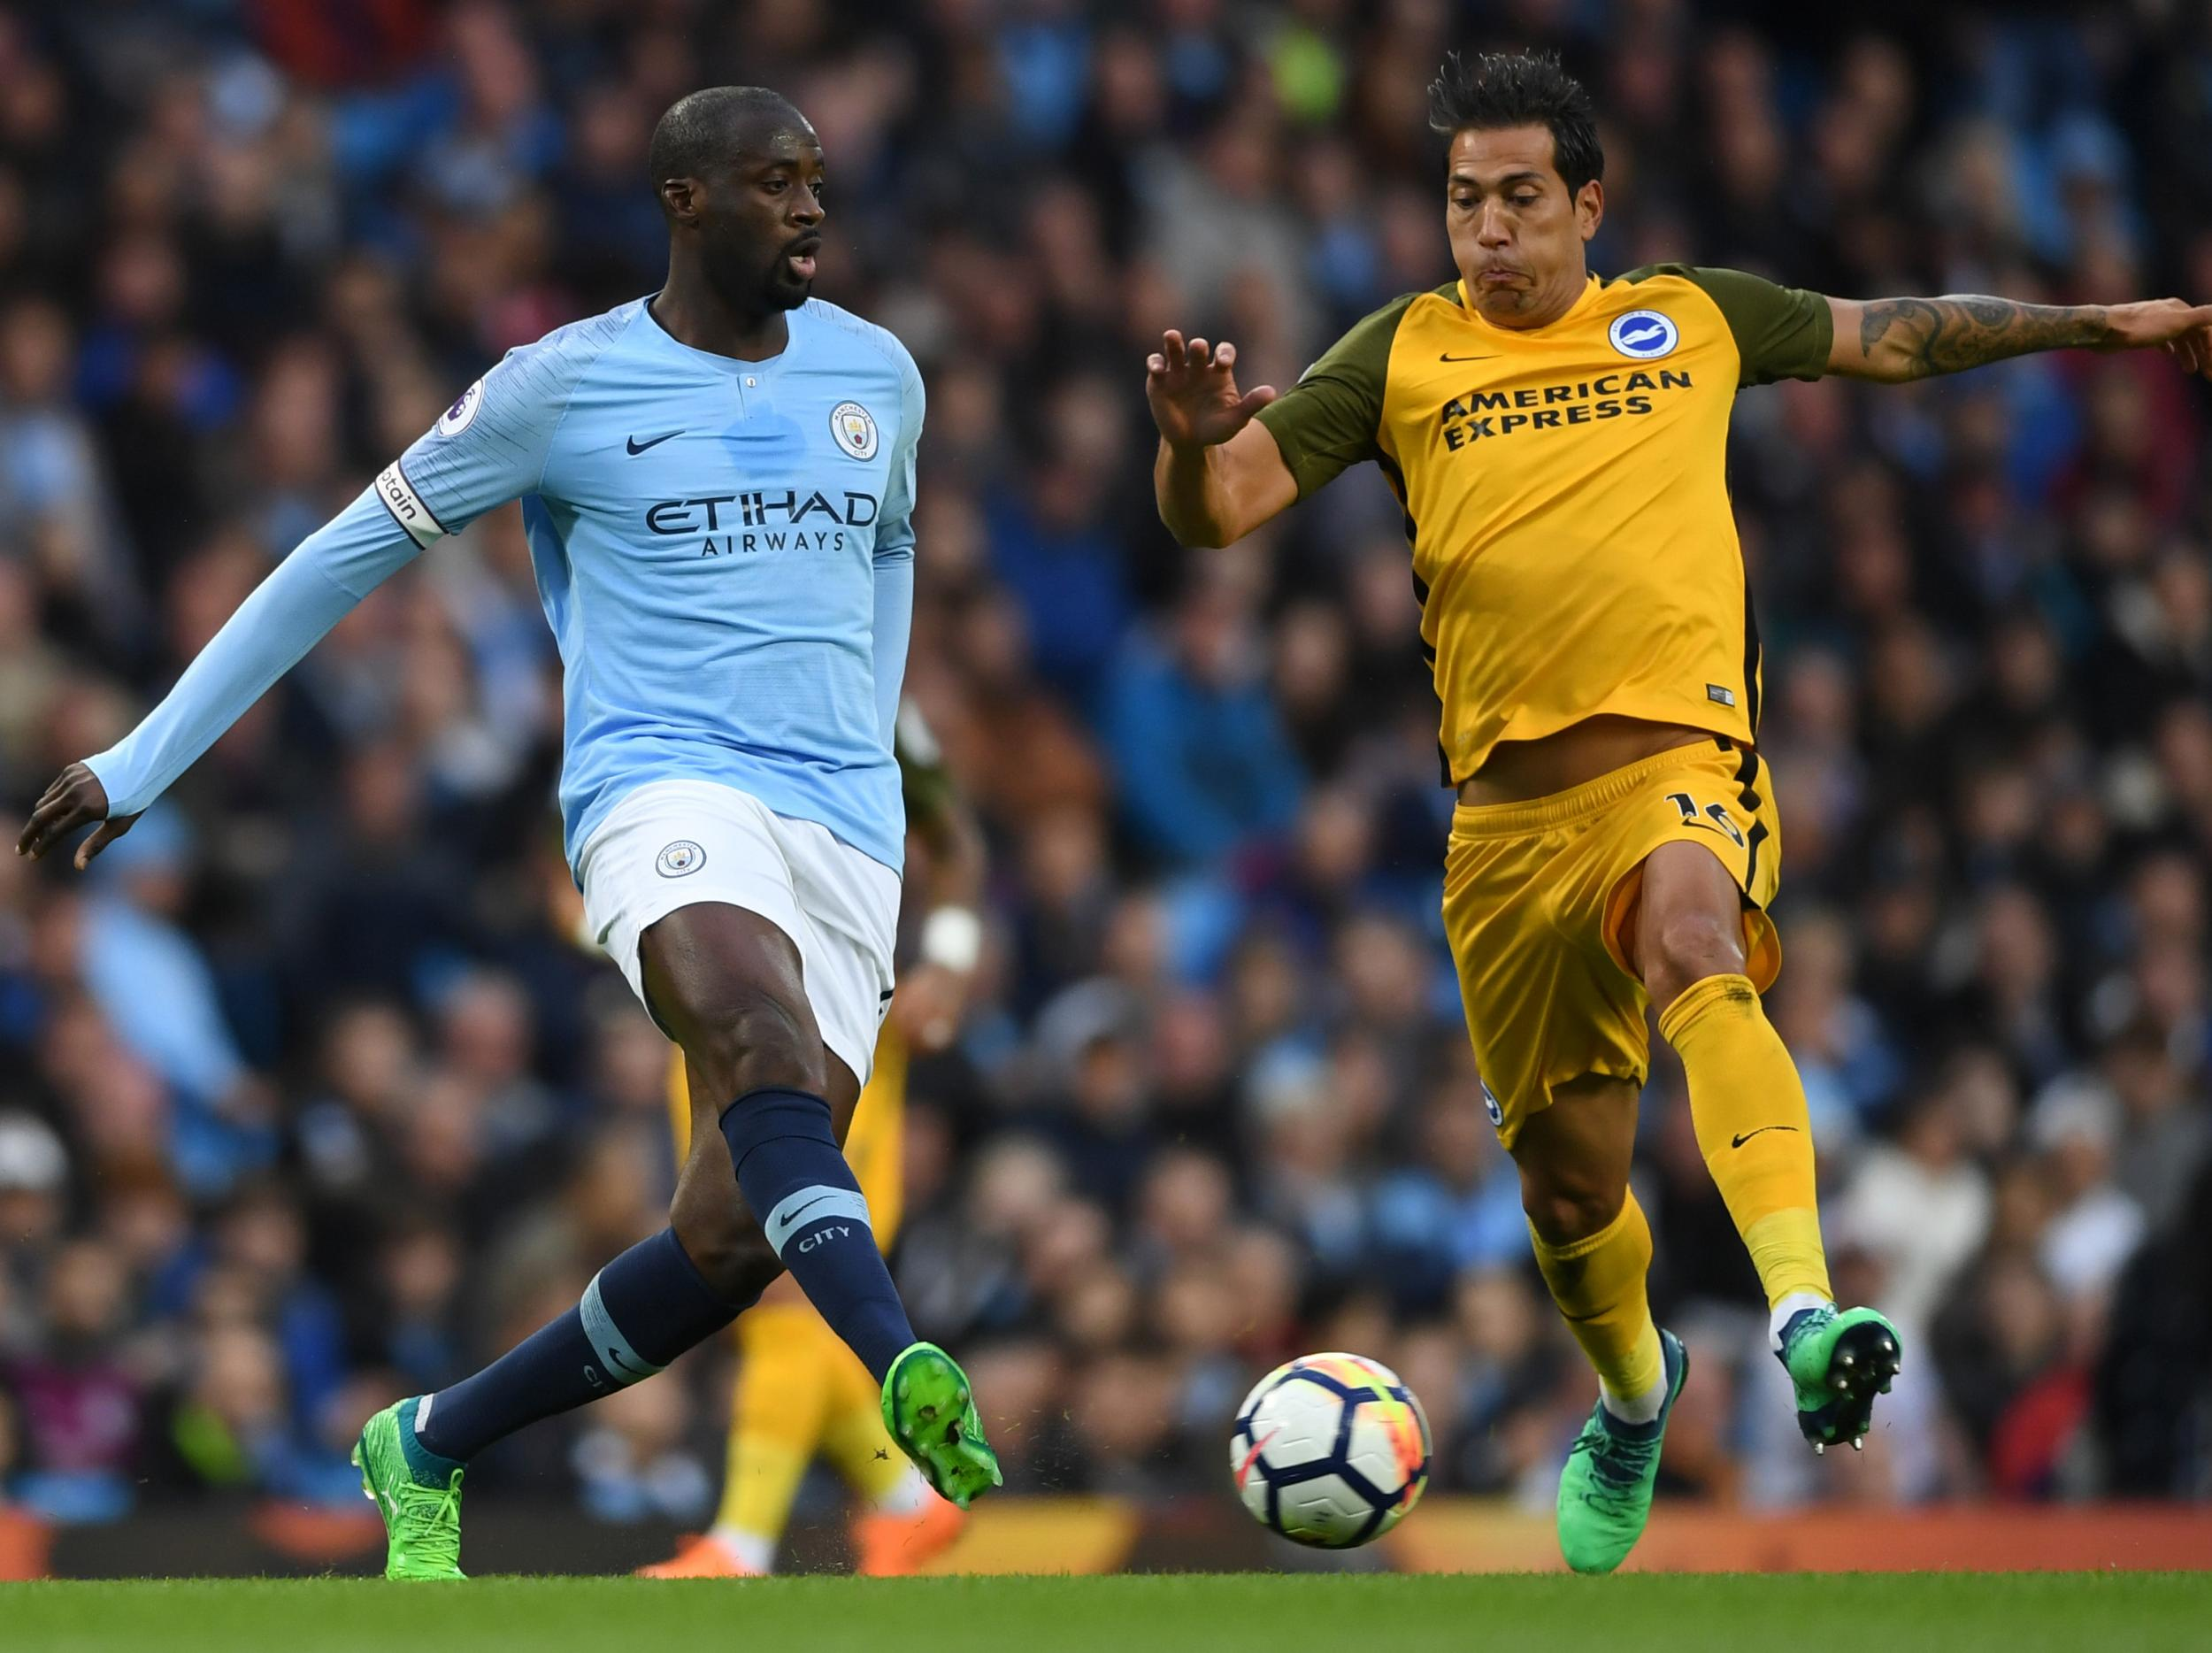 Manchester City vs Brighton LIVE: Latest goal updates and coverage